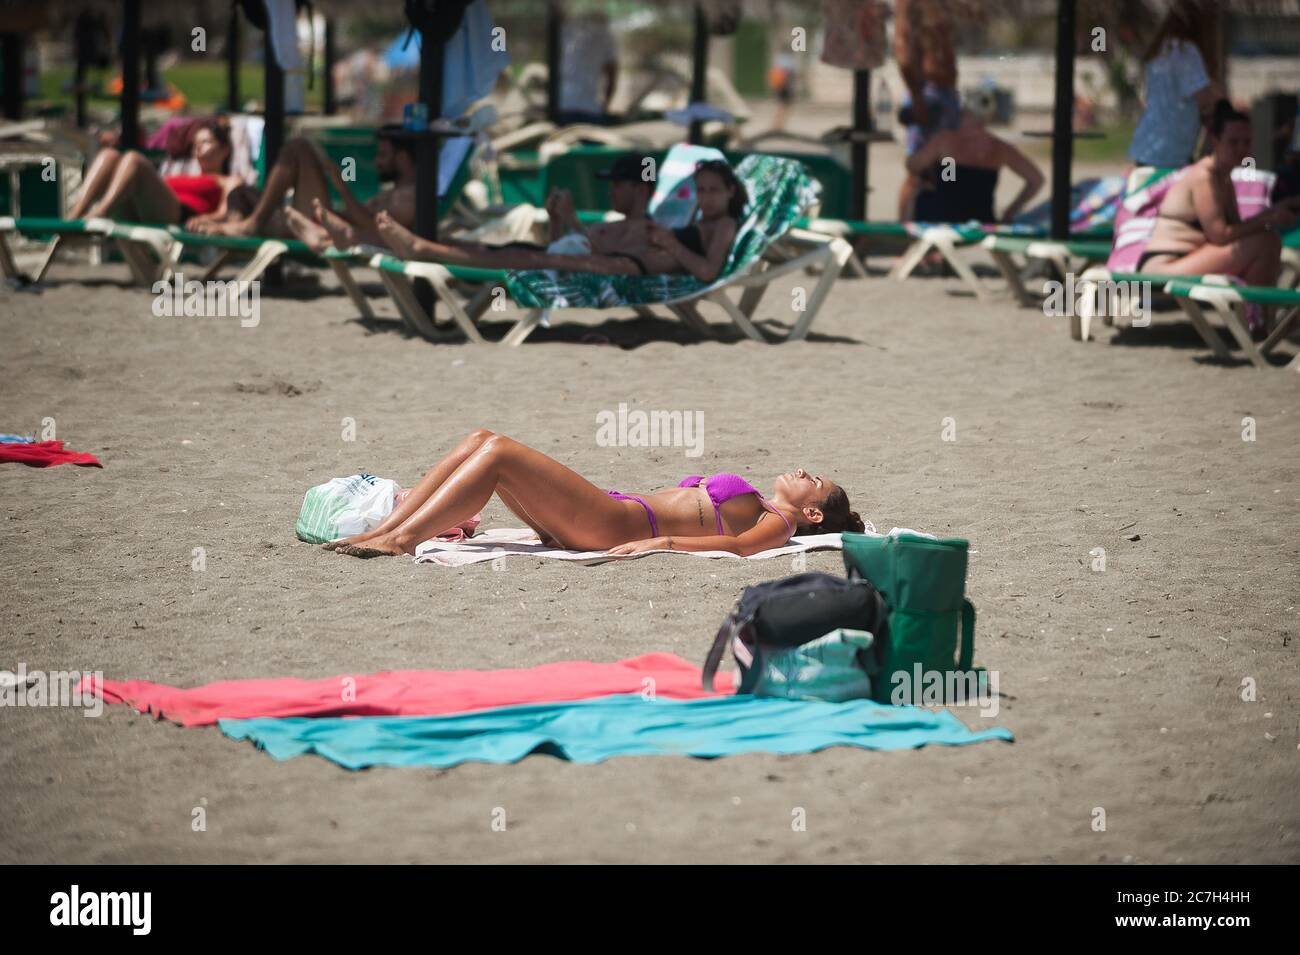 Malaga, Spain. 17th July, 2020. A woman is seen sunbathing at La Malagueta beach amid coronavirus crisis.The appearance of new coronavirus (COVID-19) outbreak in Spain after easing of restrictions has caused the regional government to impose the obligatory use of face masks in outdoors places even when they observe a safe distance between people. This measure tries to curb the spread of coronavirus pandemic. Credit: SOPA Images Limited/Alamy Live News Stock Photo